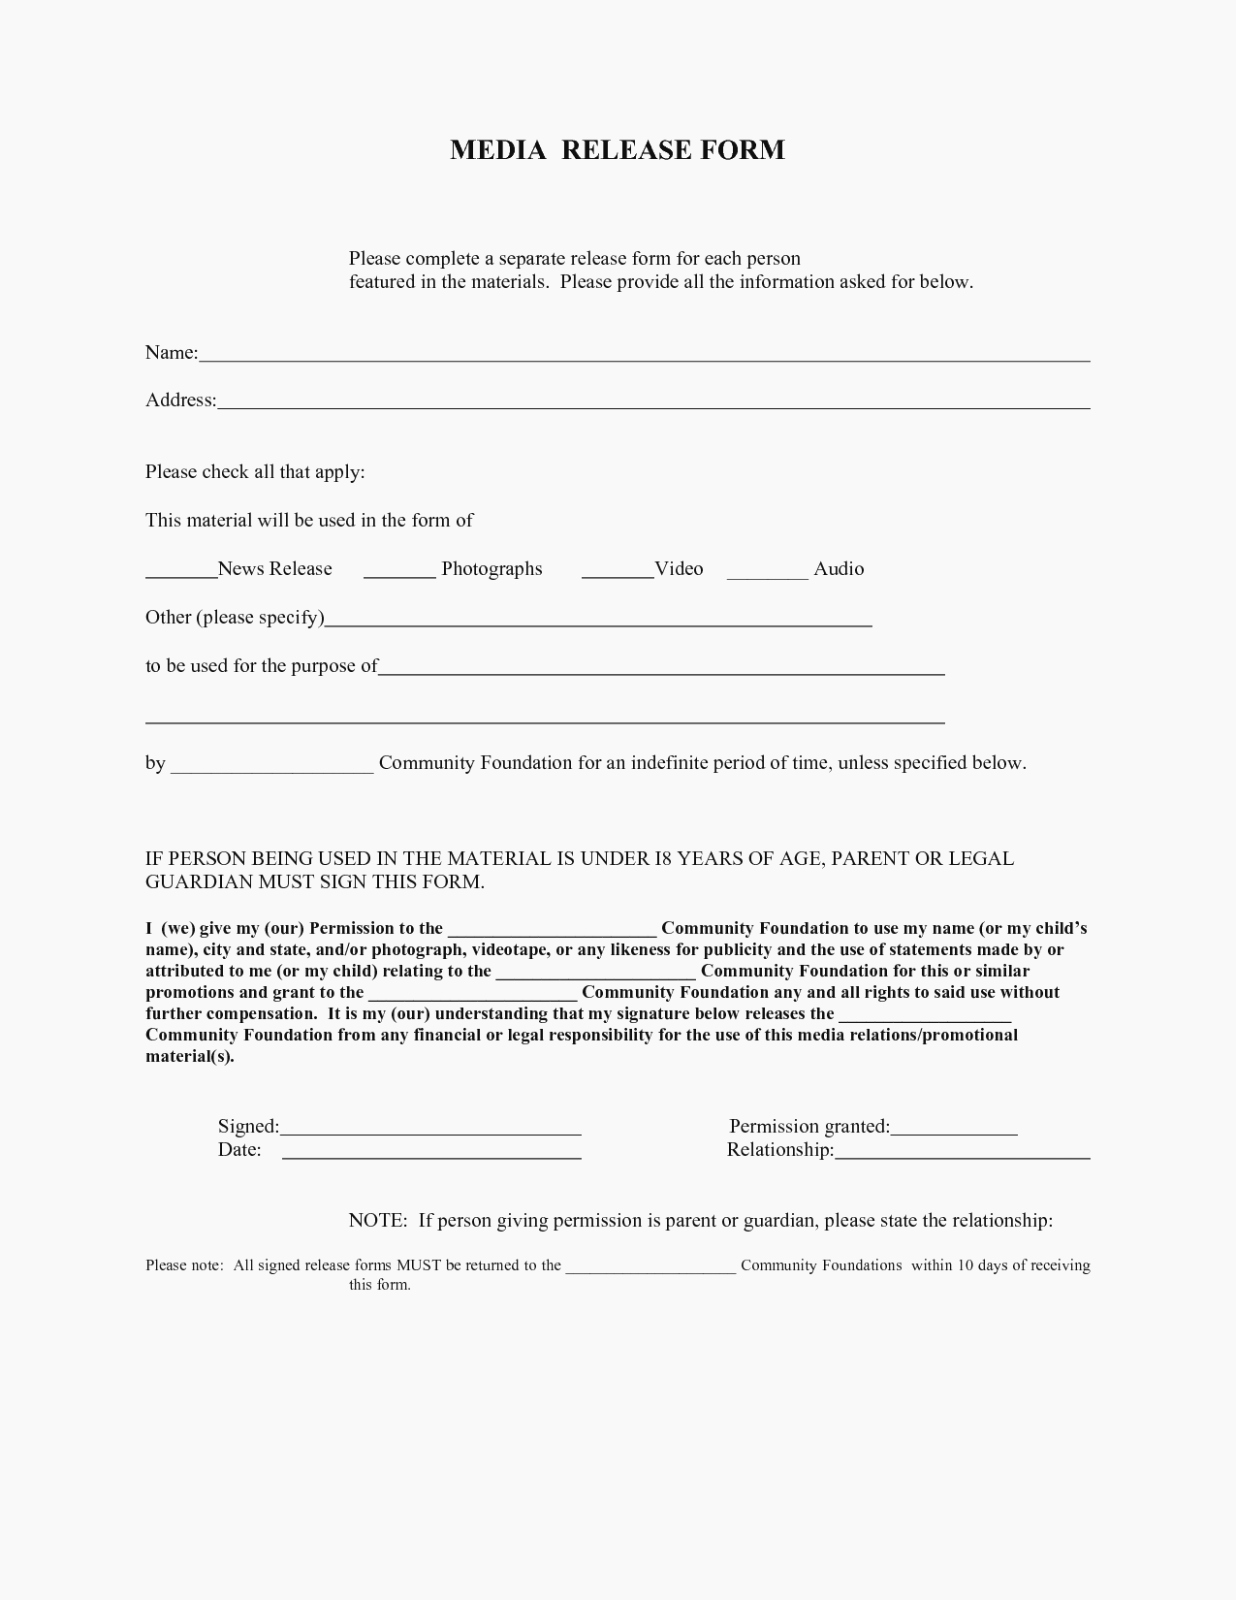 Media Release forms Template Best Of Understand the Background